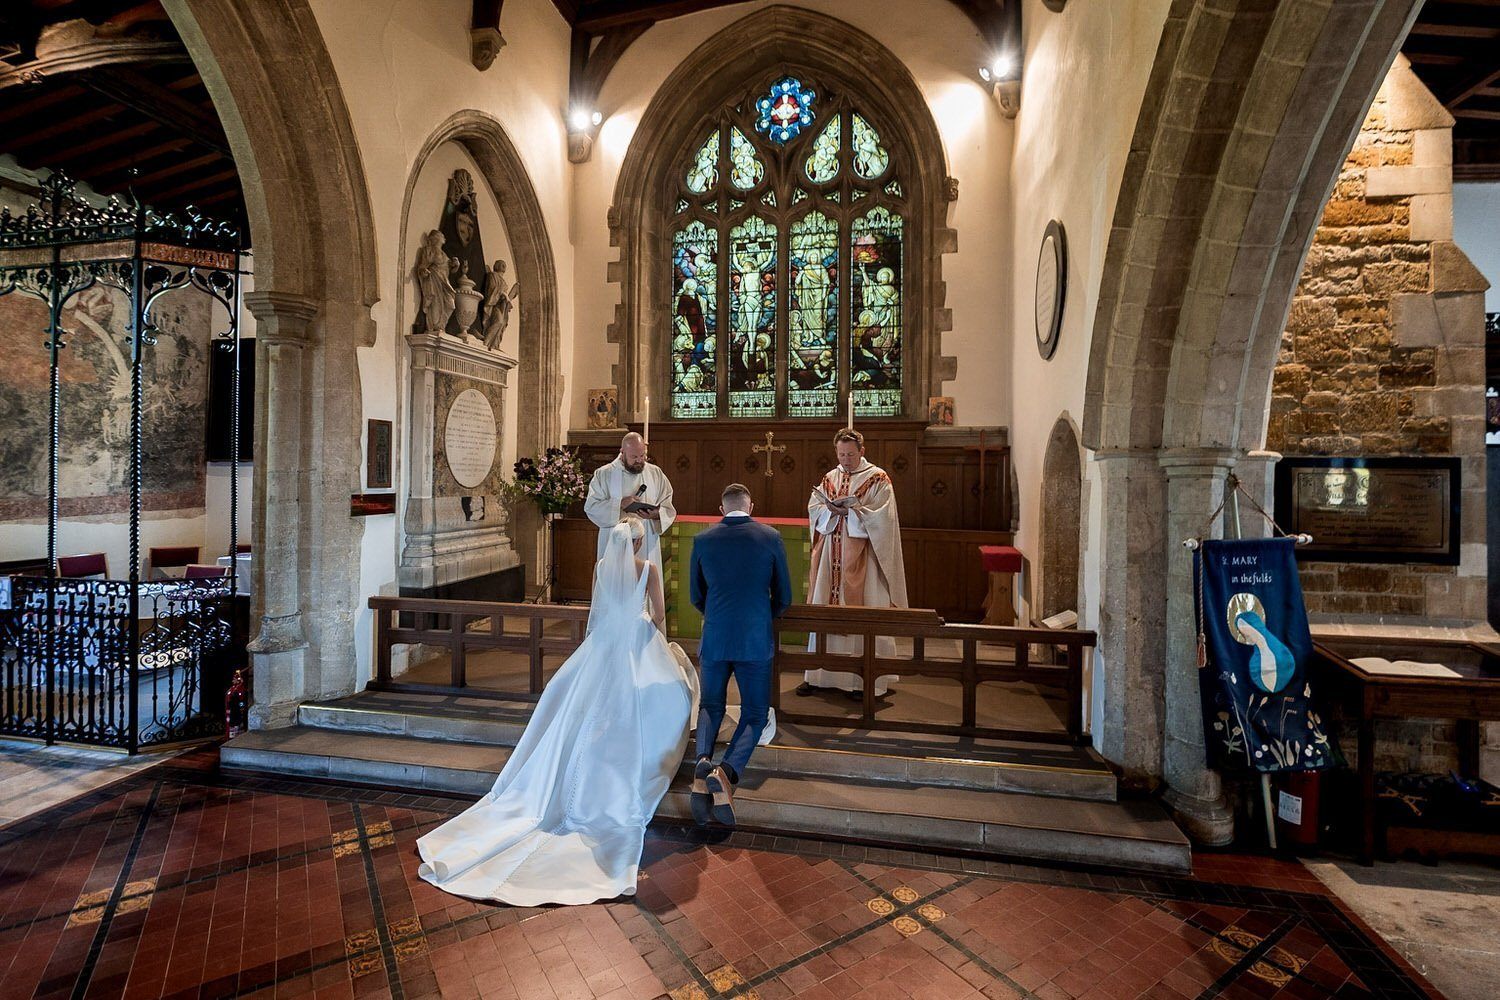 Great Bowden Parish Church Lockwood Weddings Photography bride and groom kneeling at the high altar for their wedding blessing